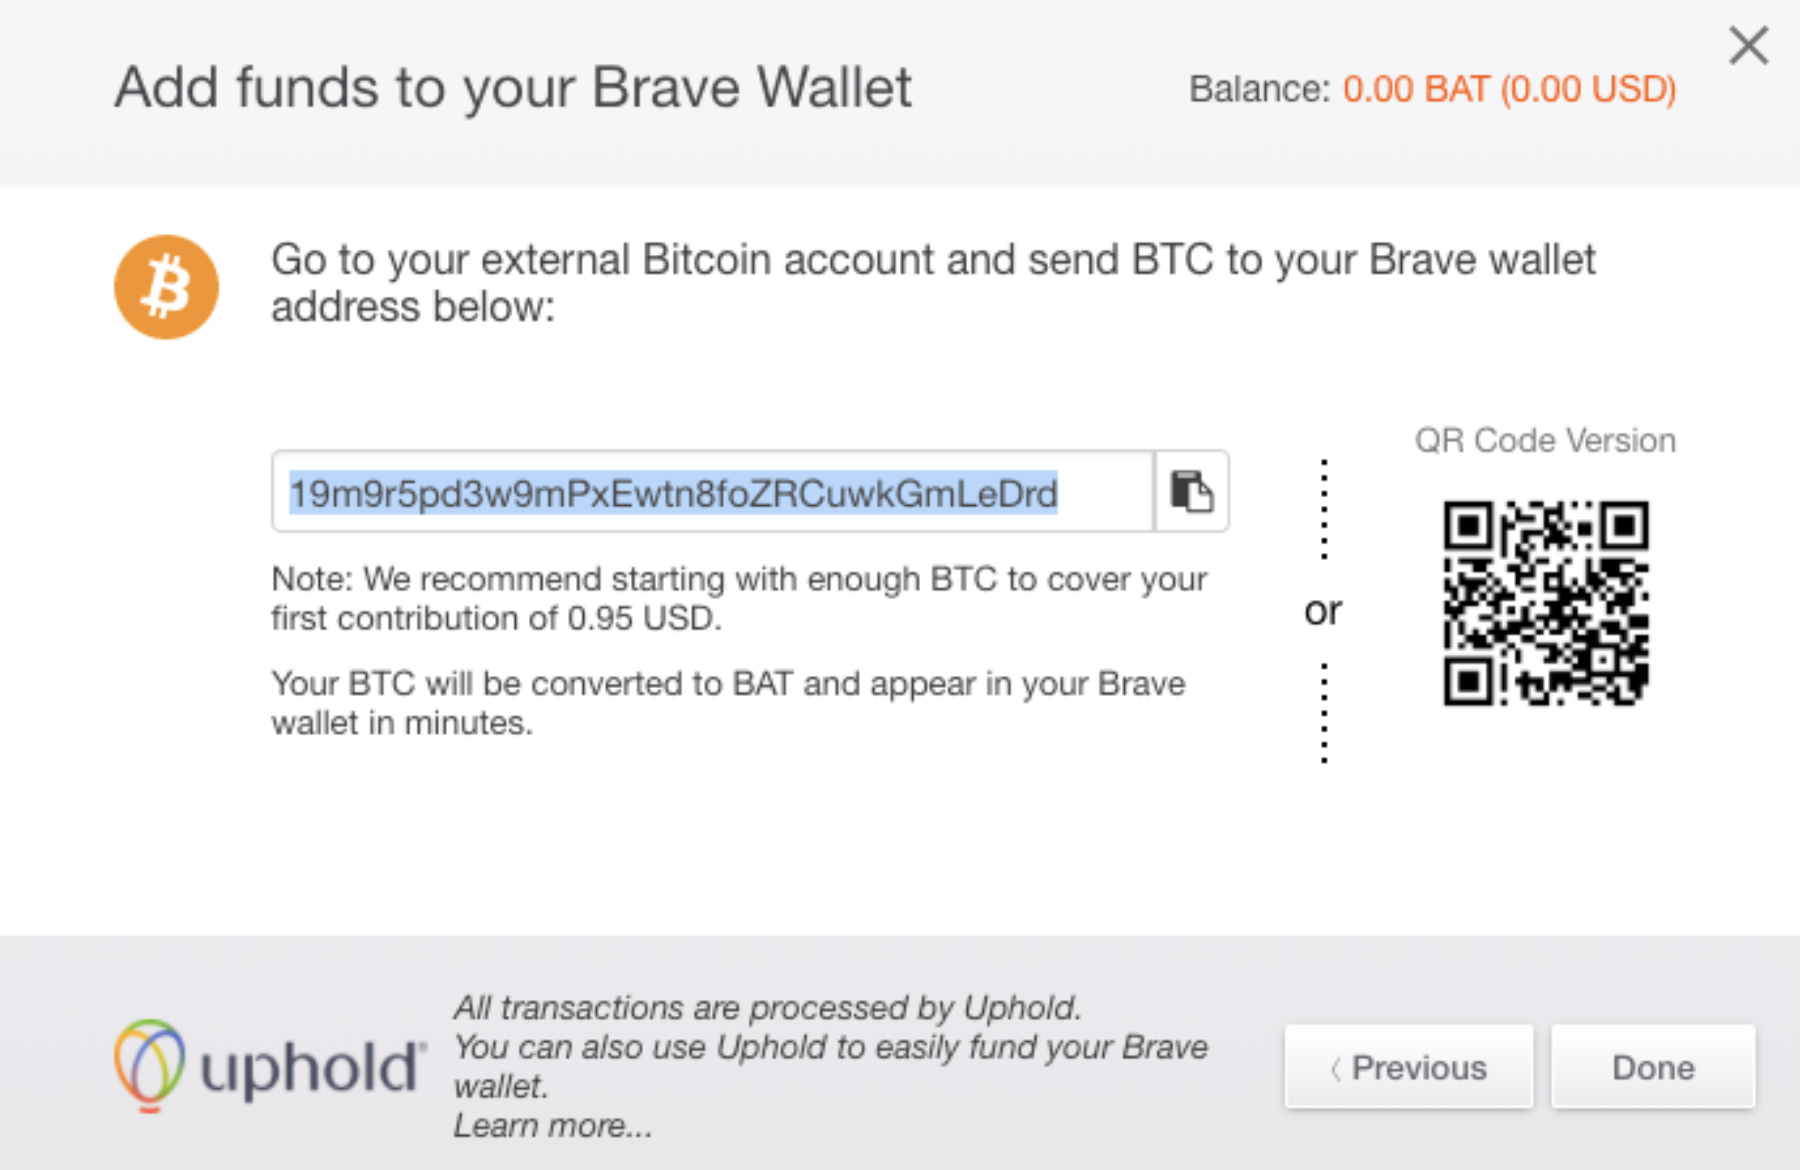 Brave Wallet Deposit address